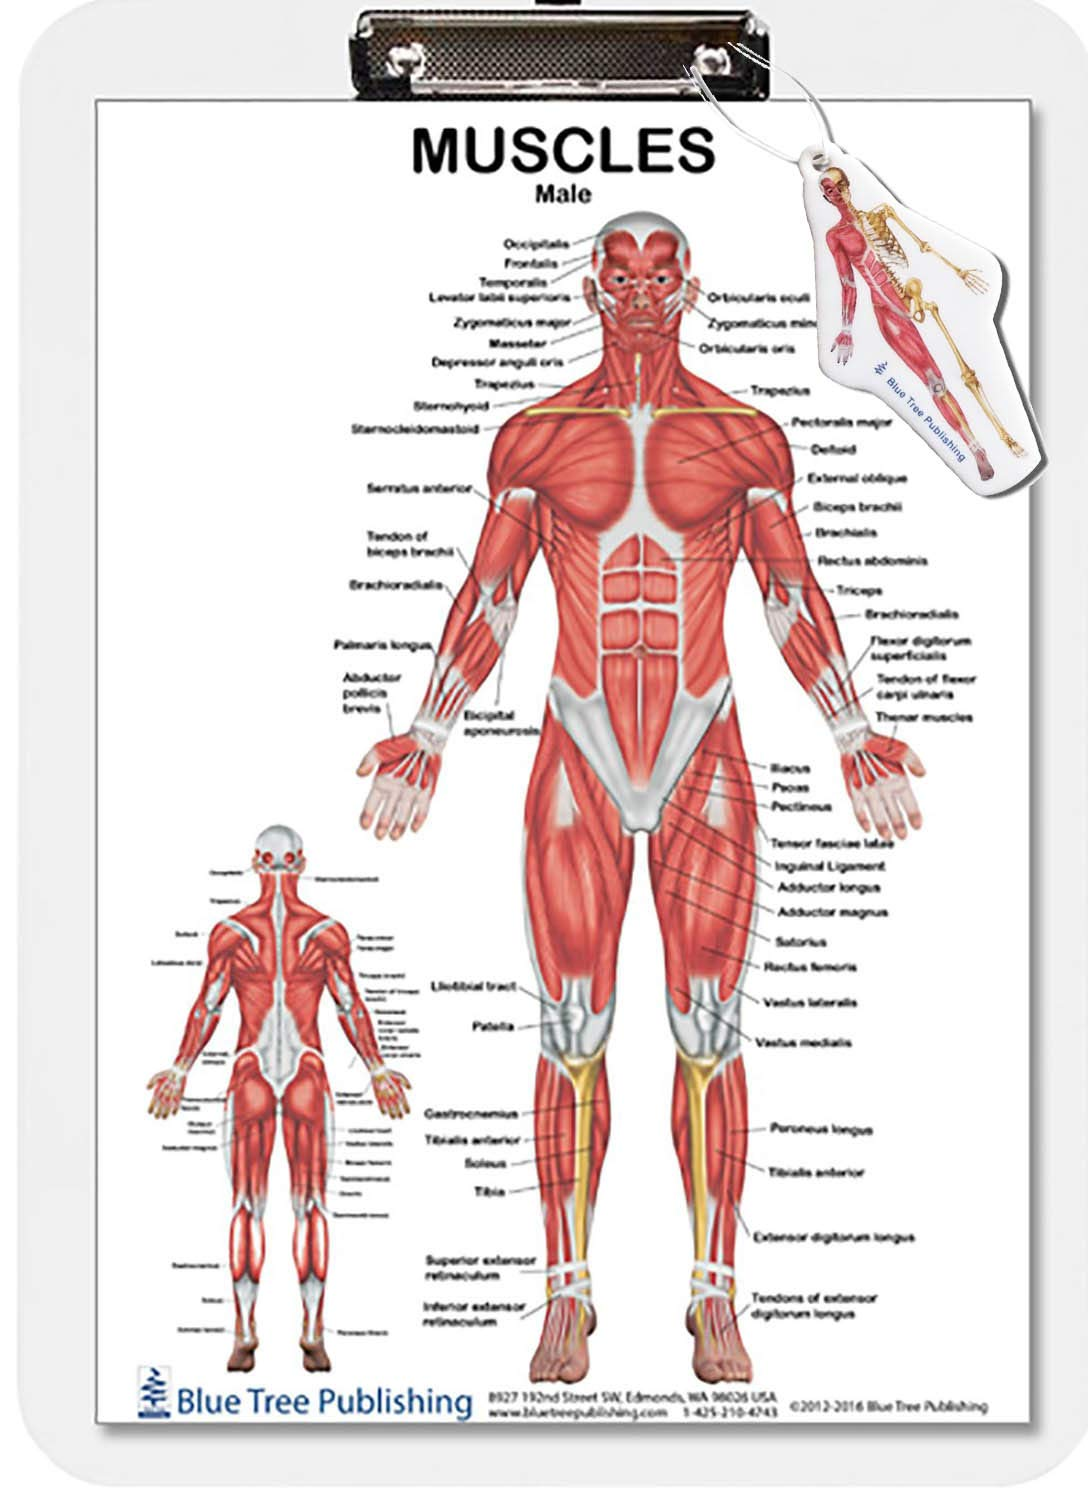 Muscle Anatomy Female and Male Dry Erase Clipboard Two Sided (Skeletal):  Amazon.com: Industrial & ScientificAmazon.com